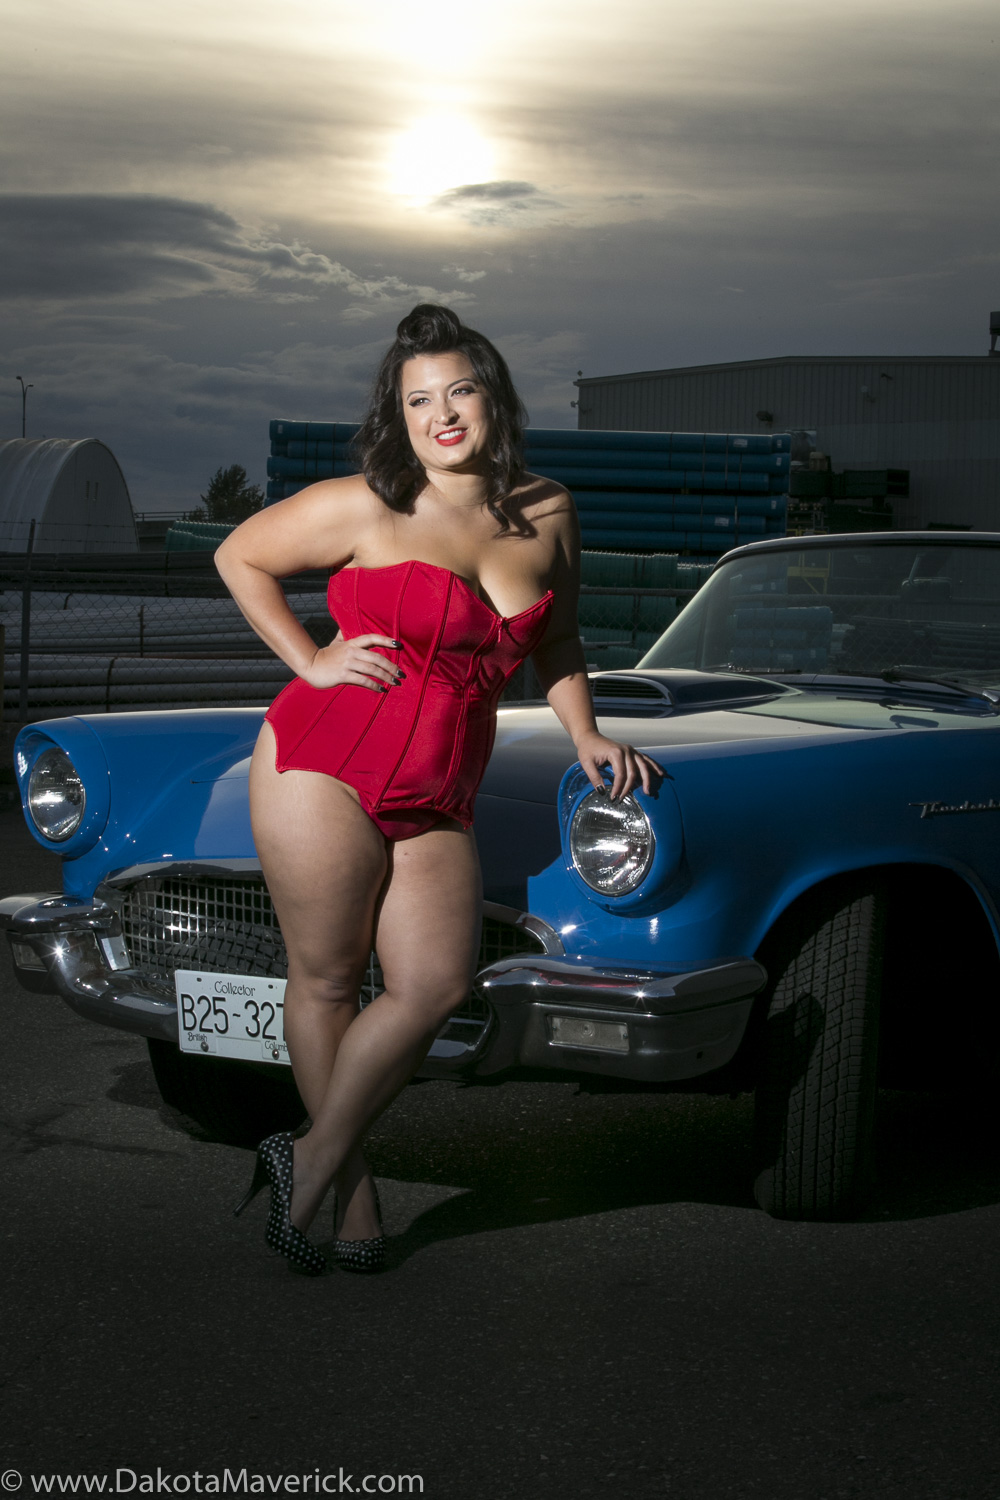 Vancouver Pinup Photographer - April (6 of 19).jpg